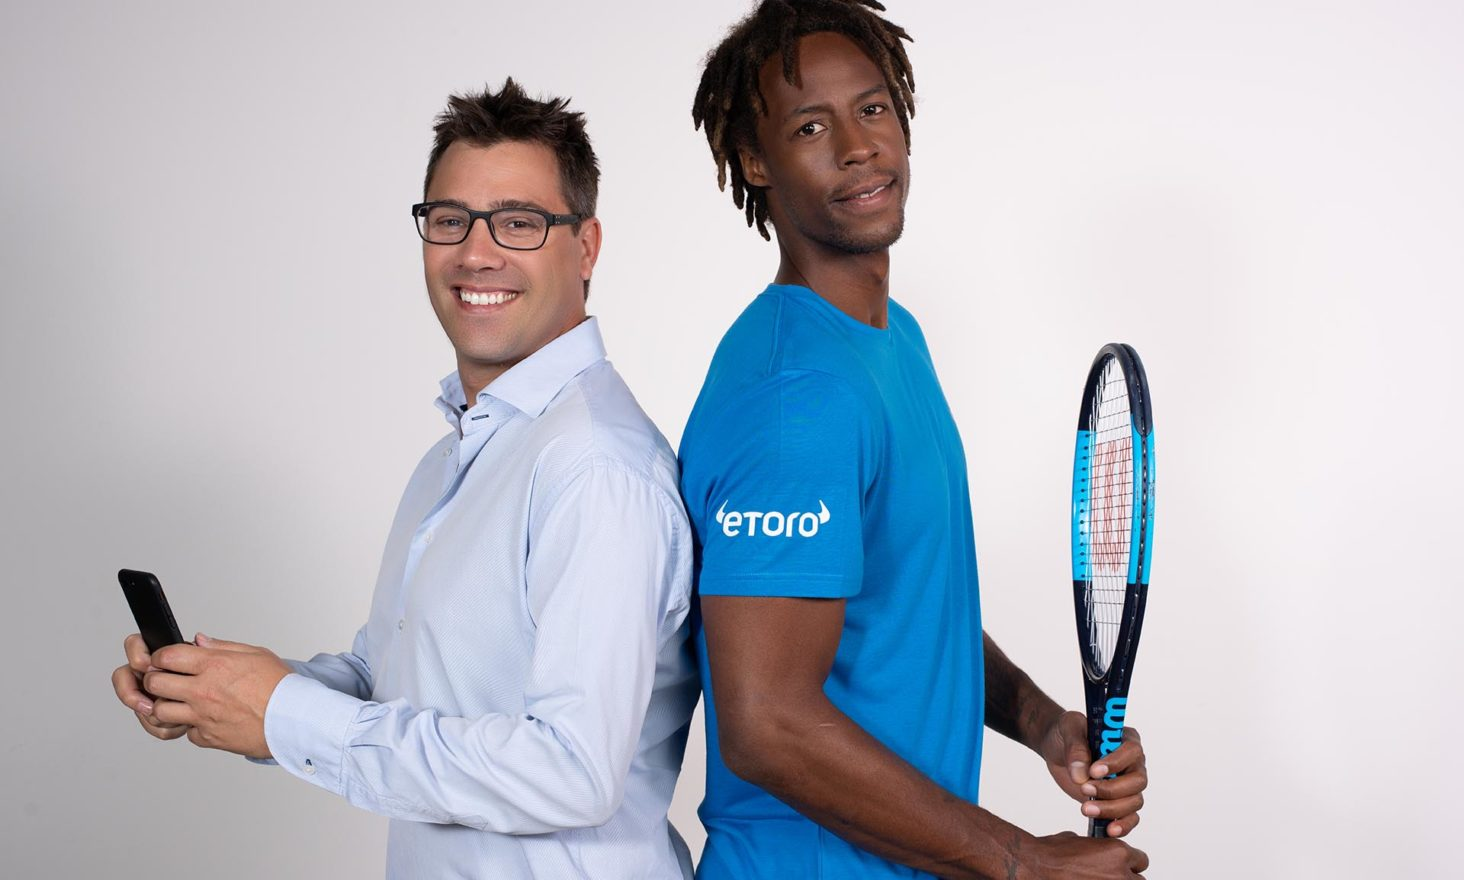 """Get Serious About Investing"" with eToro and Gael Monfils"